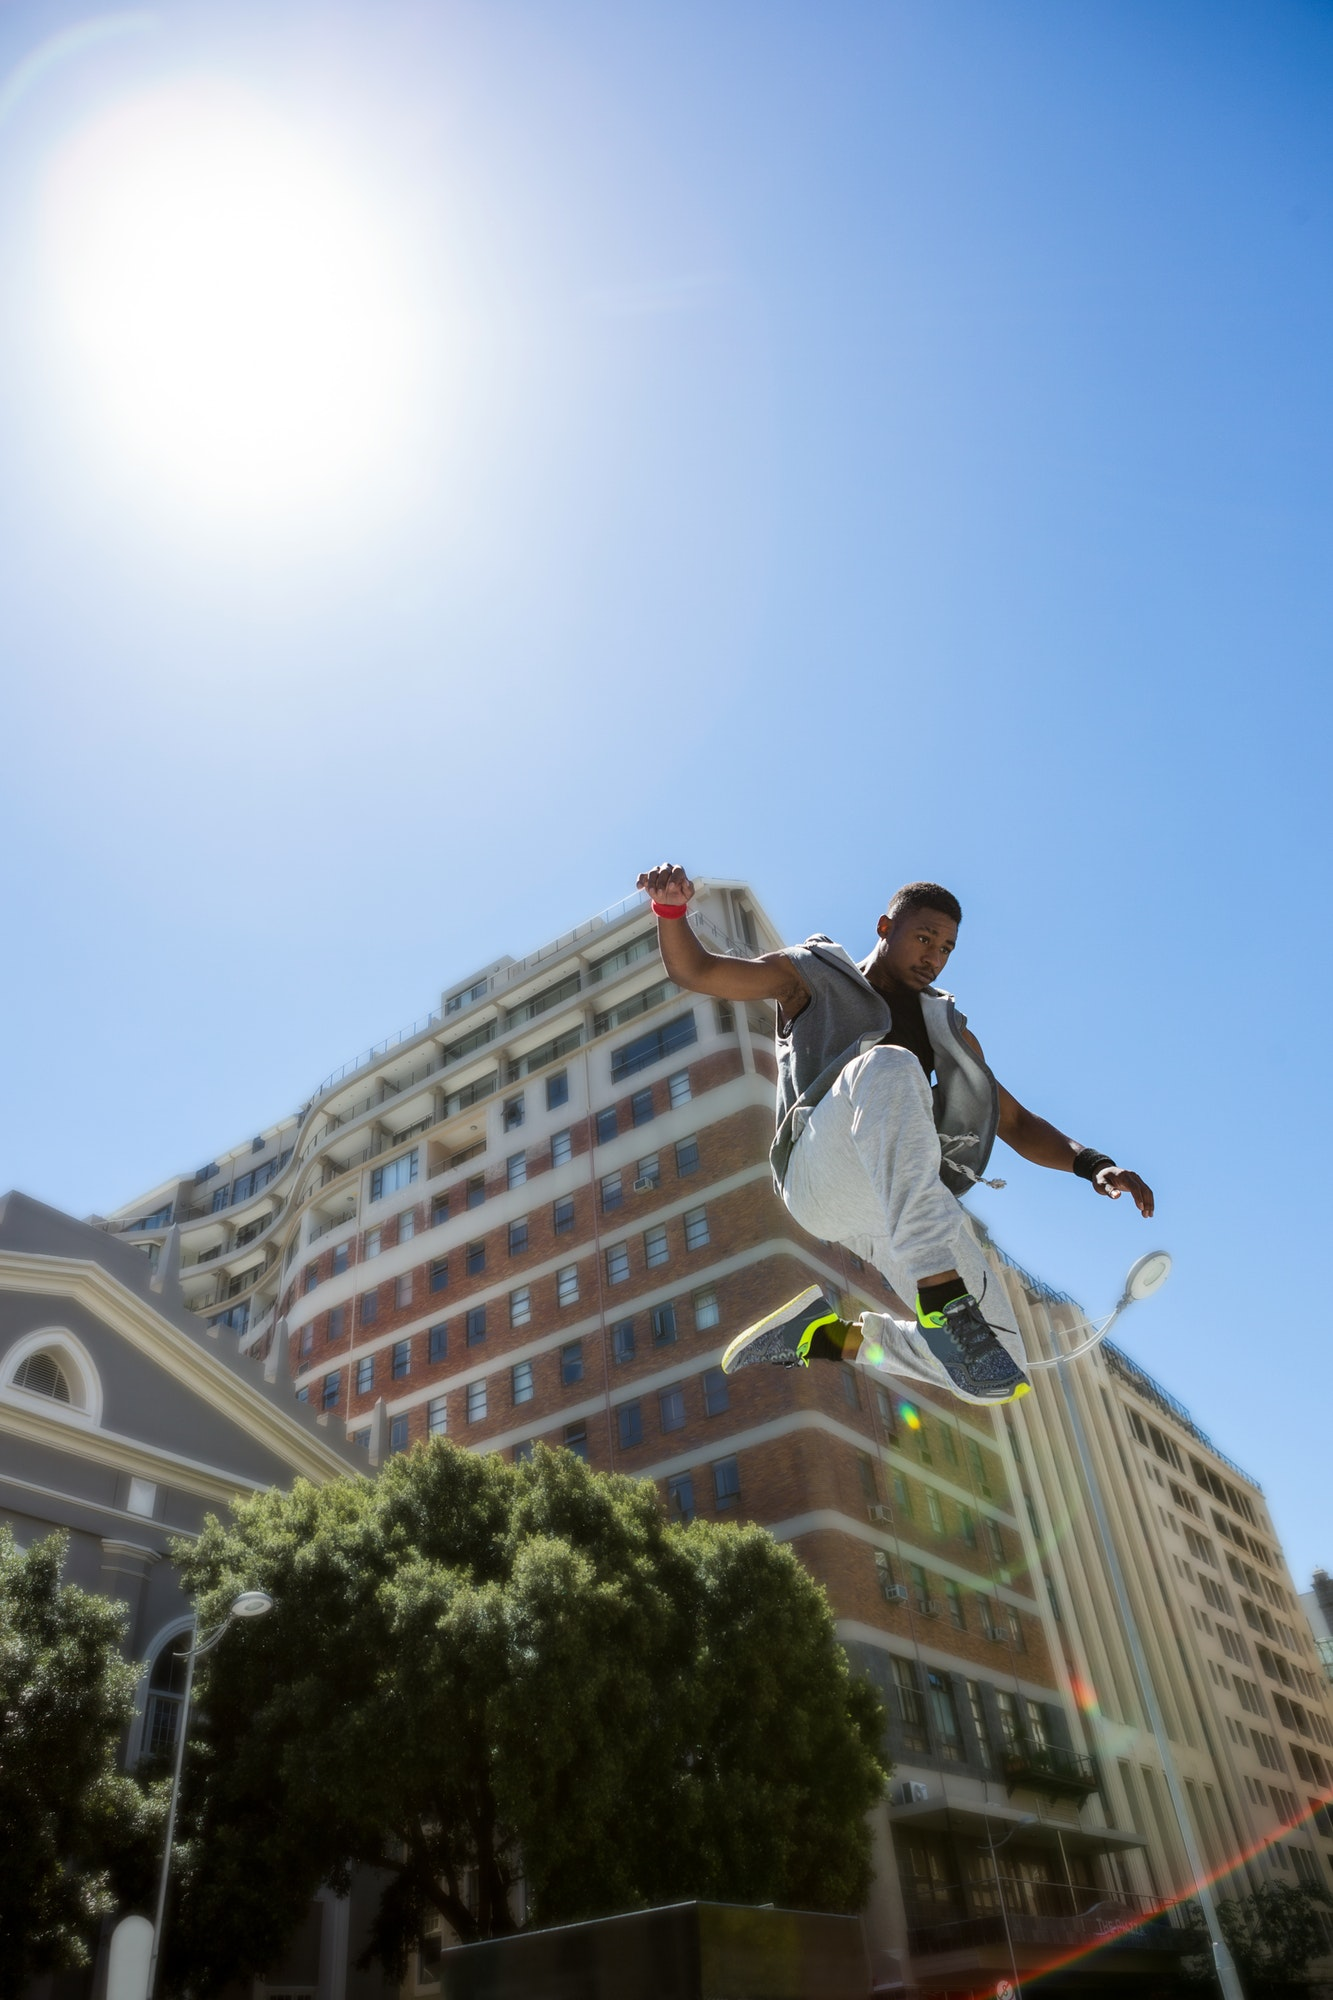 Athletic man doing parkour in the city on a sunny day  Apple dévoile son nouveau service de télévision athletic man doing parkour in the city on a sunny day